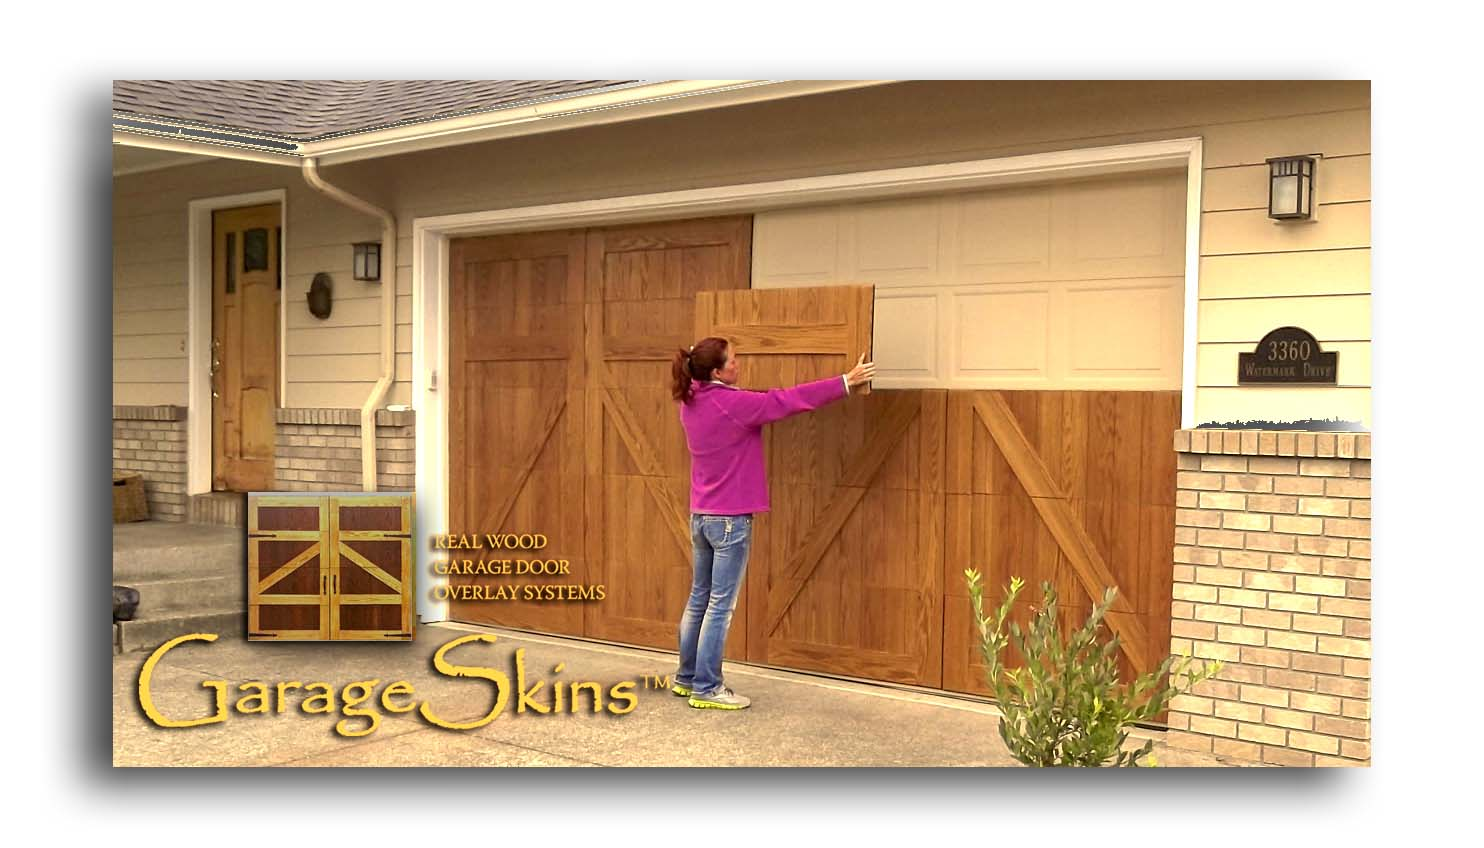 Garageskins Real Wood Garage Door Overlays Indiegogo